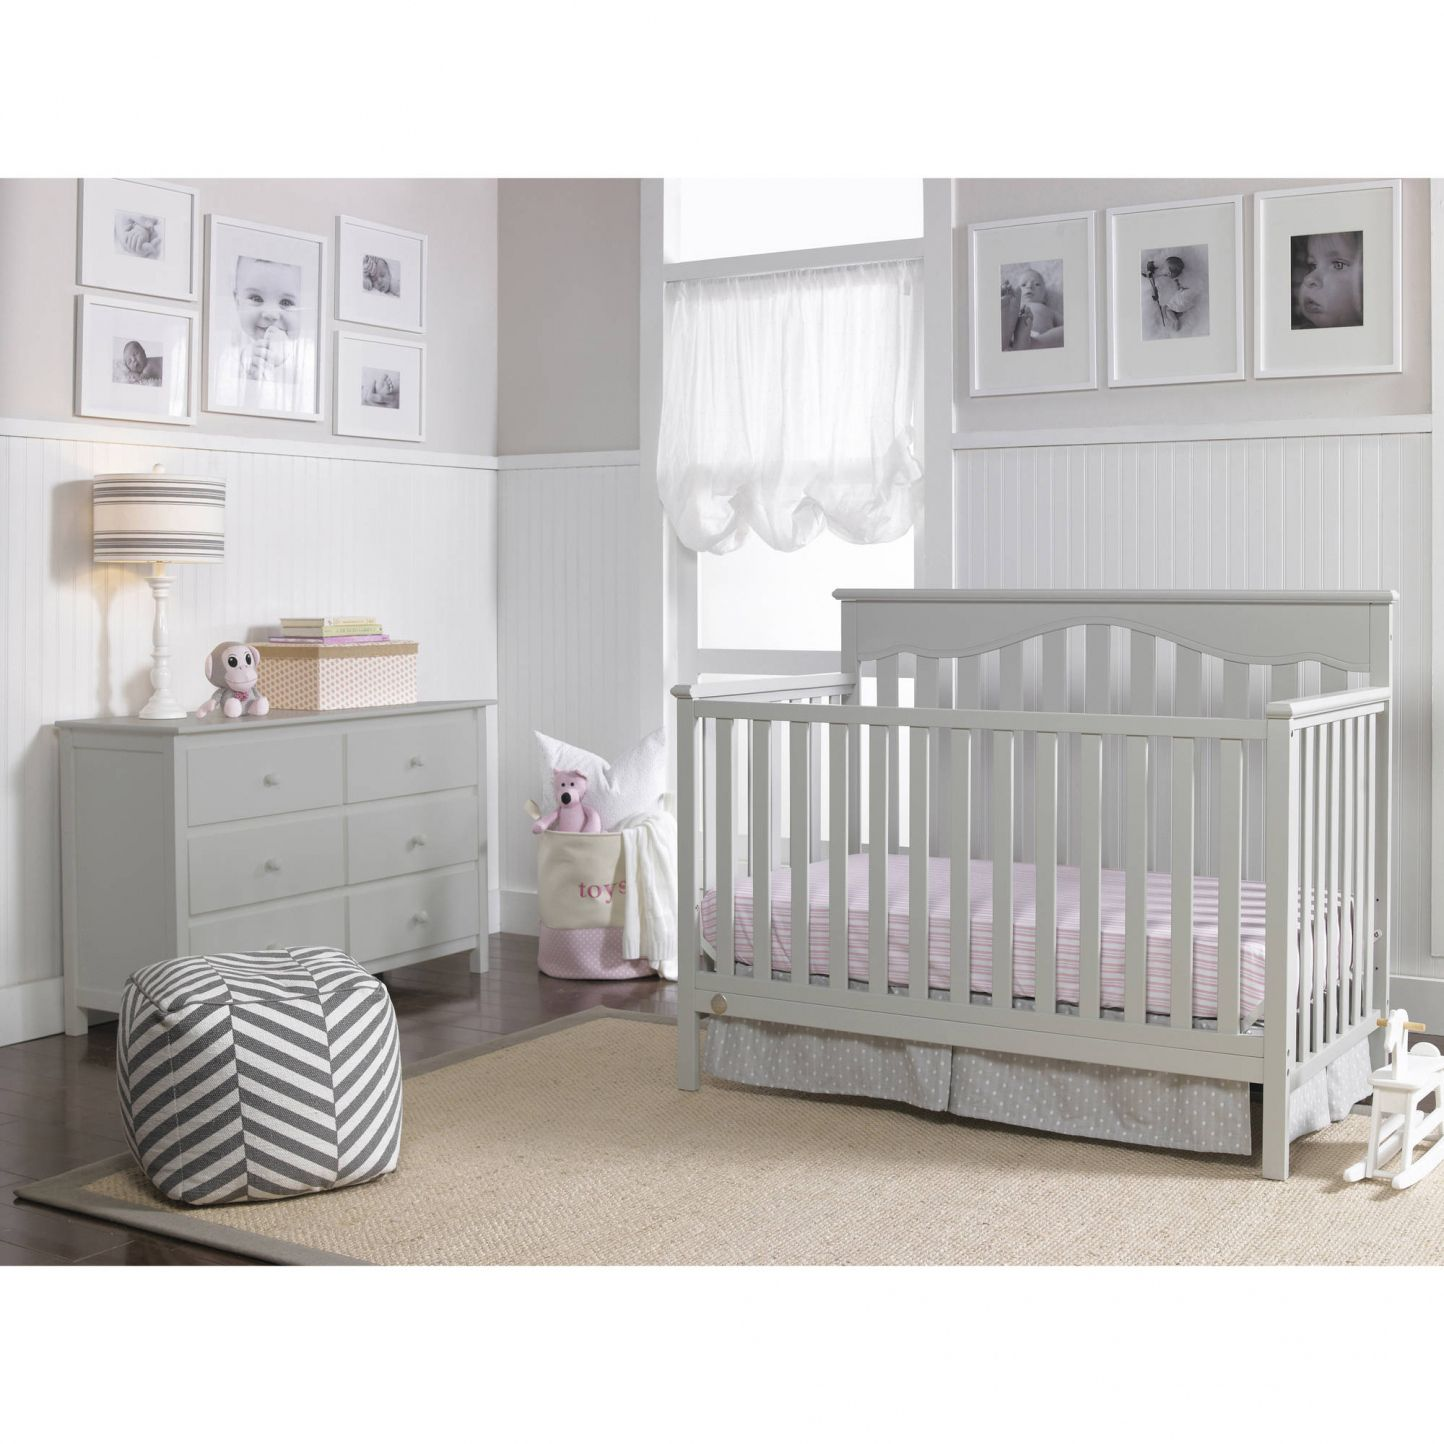 Baby Bedroom Furniture Sets Cheap Best Interior Paint Colors Check More At Http Www Chulanipho Baby Furniture Sets Baby Bedroom Sets Baby Bedroom Furniture